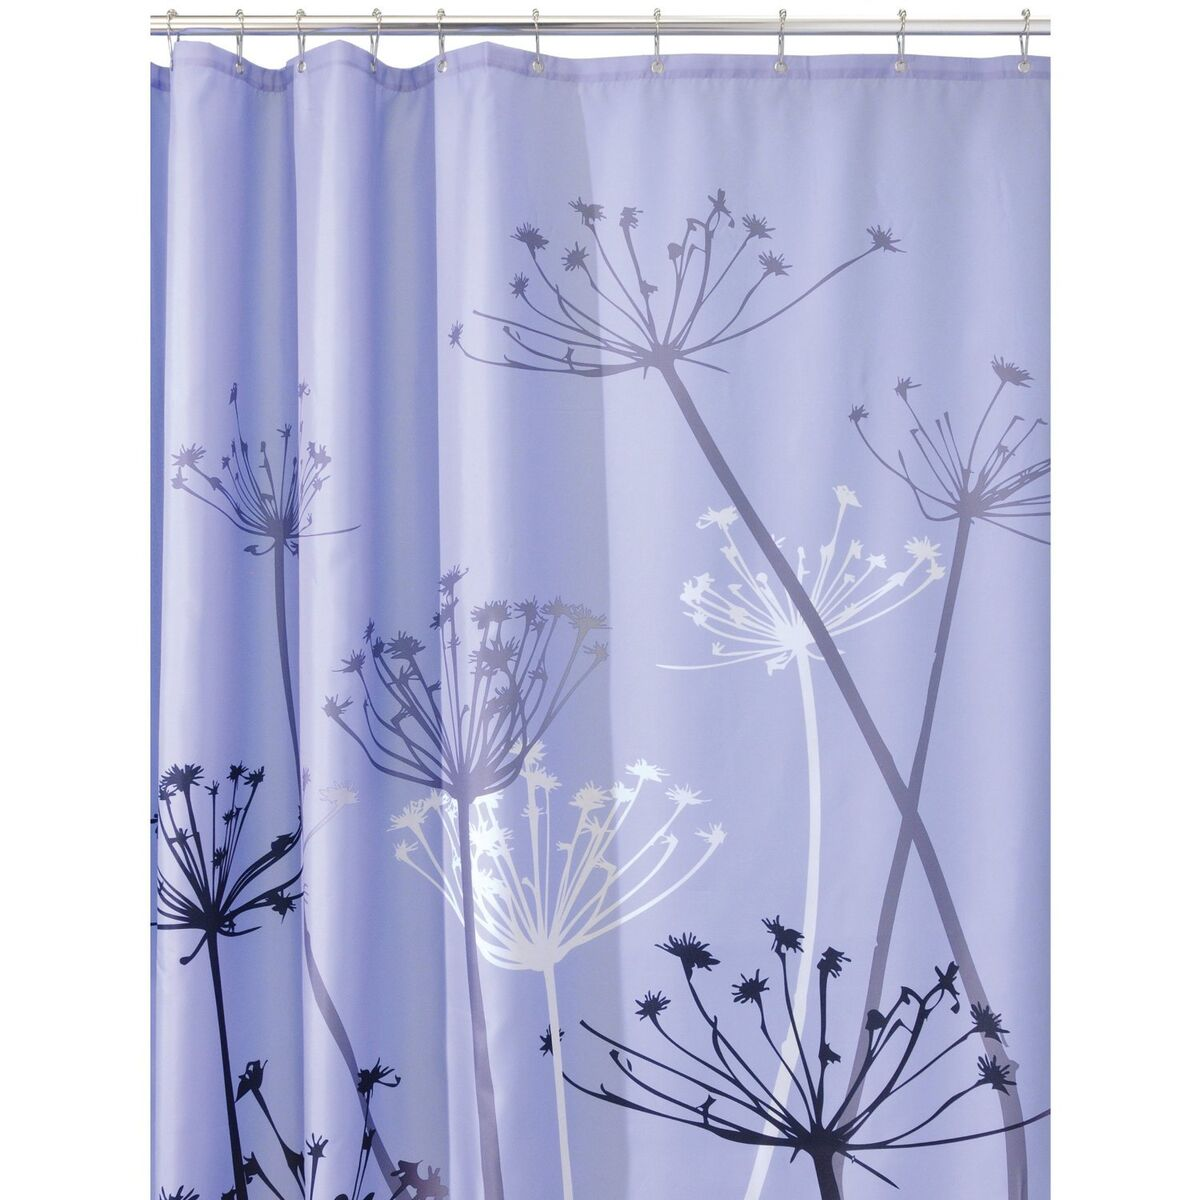 fabric shower curtain floral gray and purple color baroom